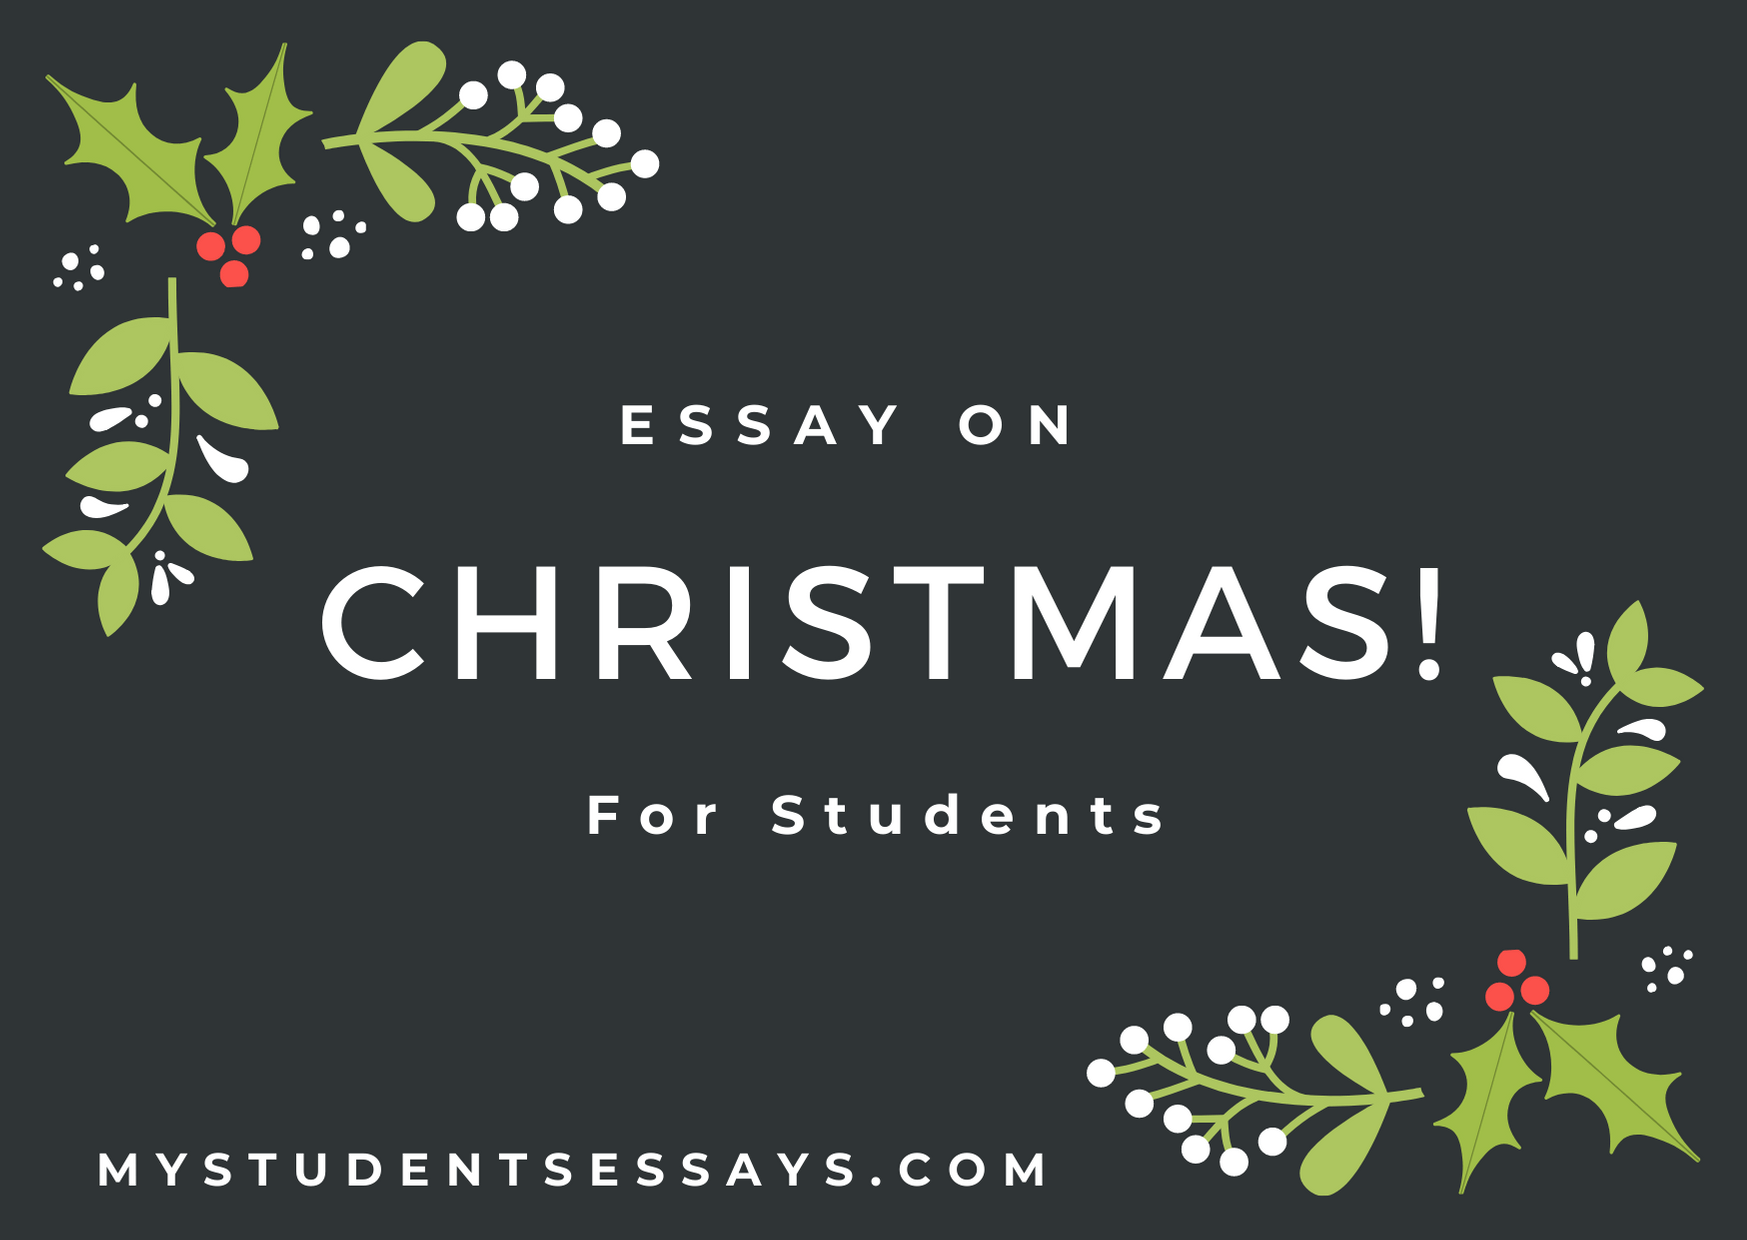 Essay on Christmas for Students